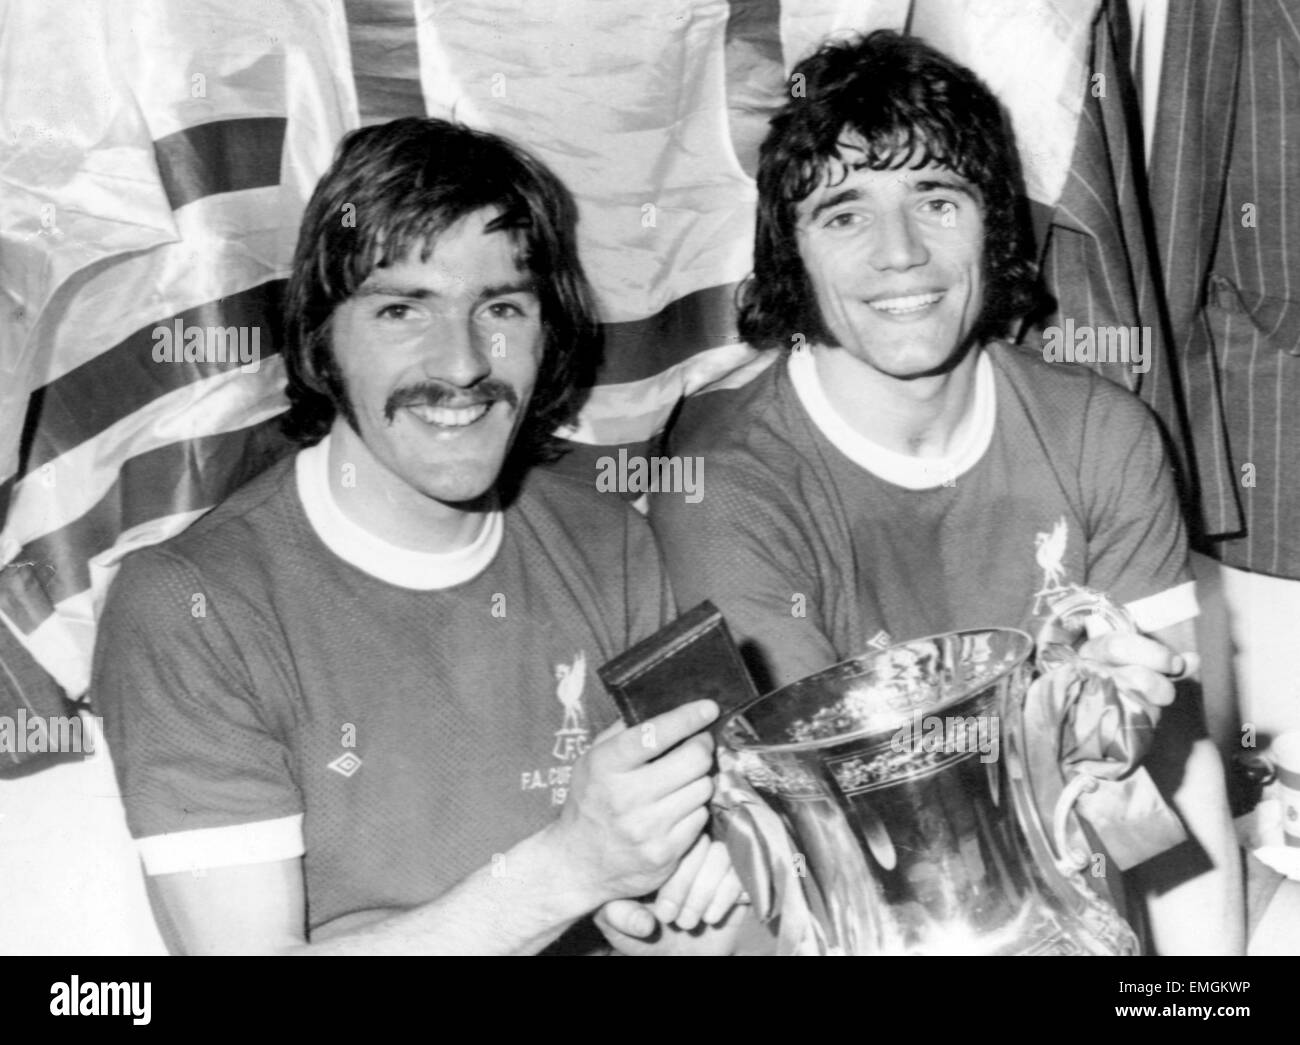 1974 FA Cup Final at Wembley. Steve Heighway and Kevin Keegan with the FA Cup after Liverpool had beaten Newscatle - Stock Image